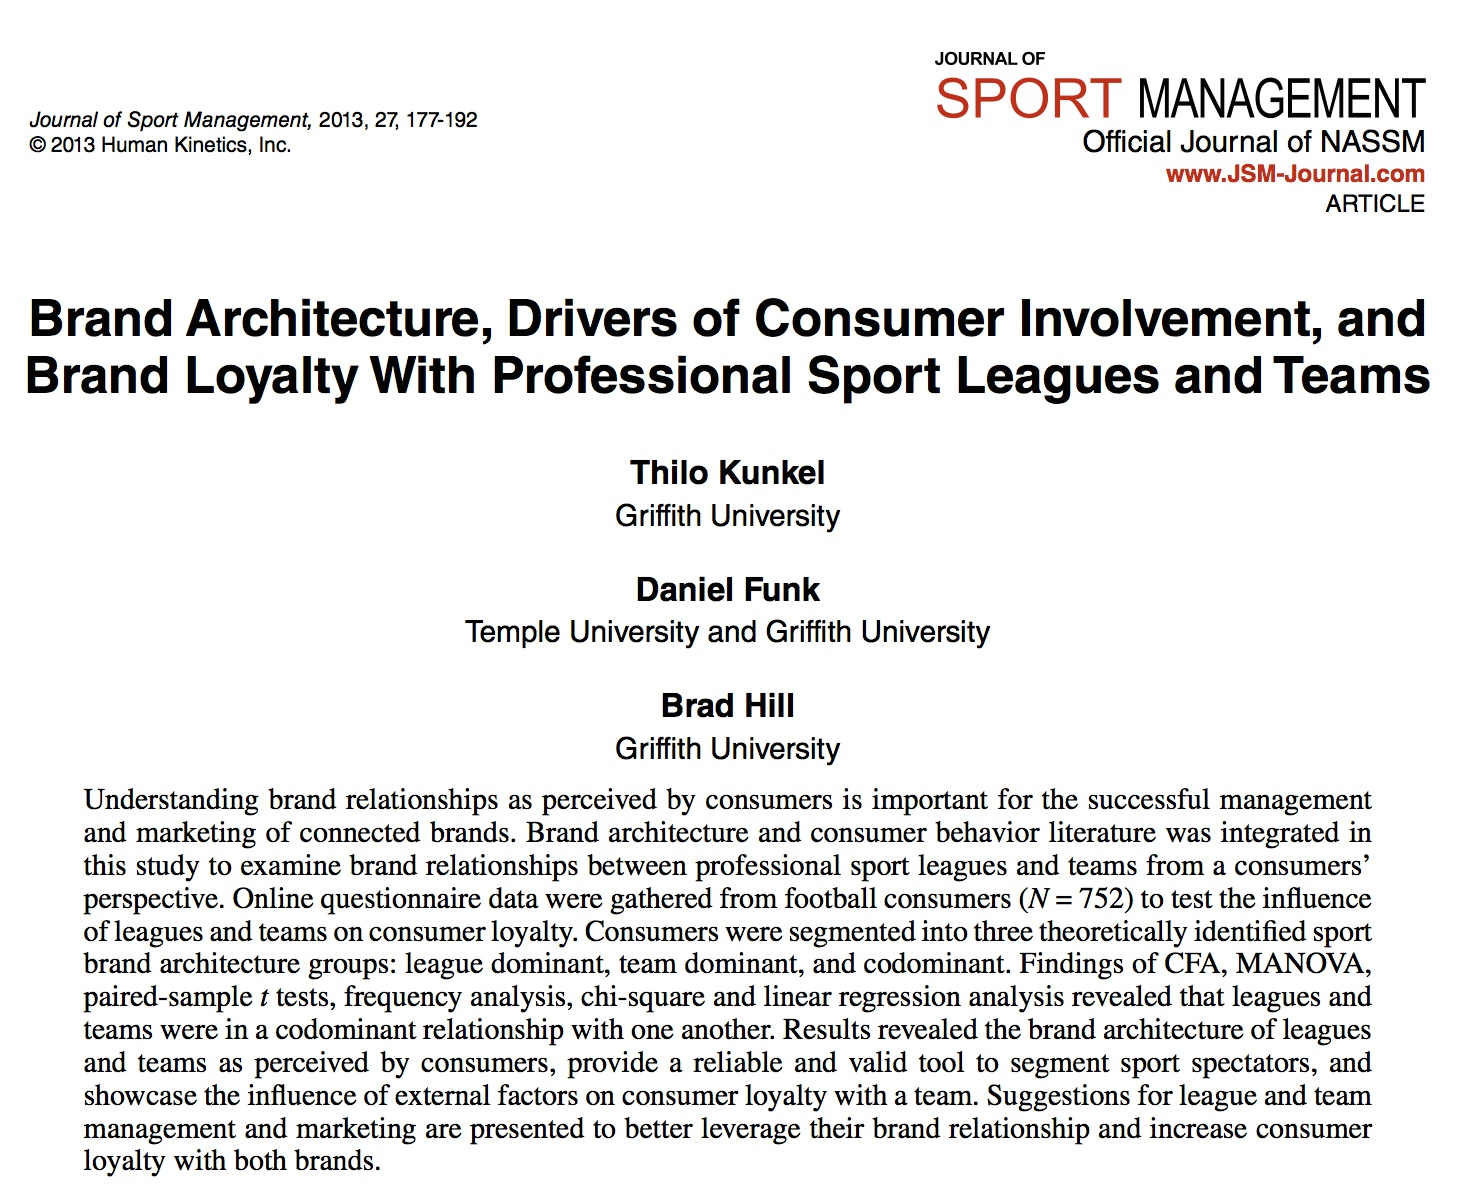 Brand Architecture, Drivers of Consumer Involvement, and Brand Loyalty with Professional Sport Leagues and Teams